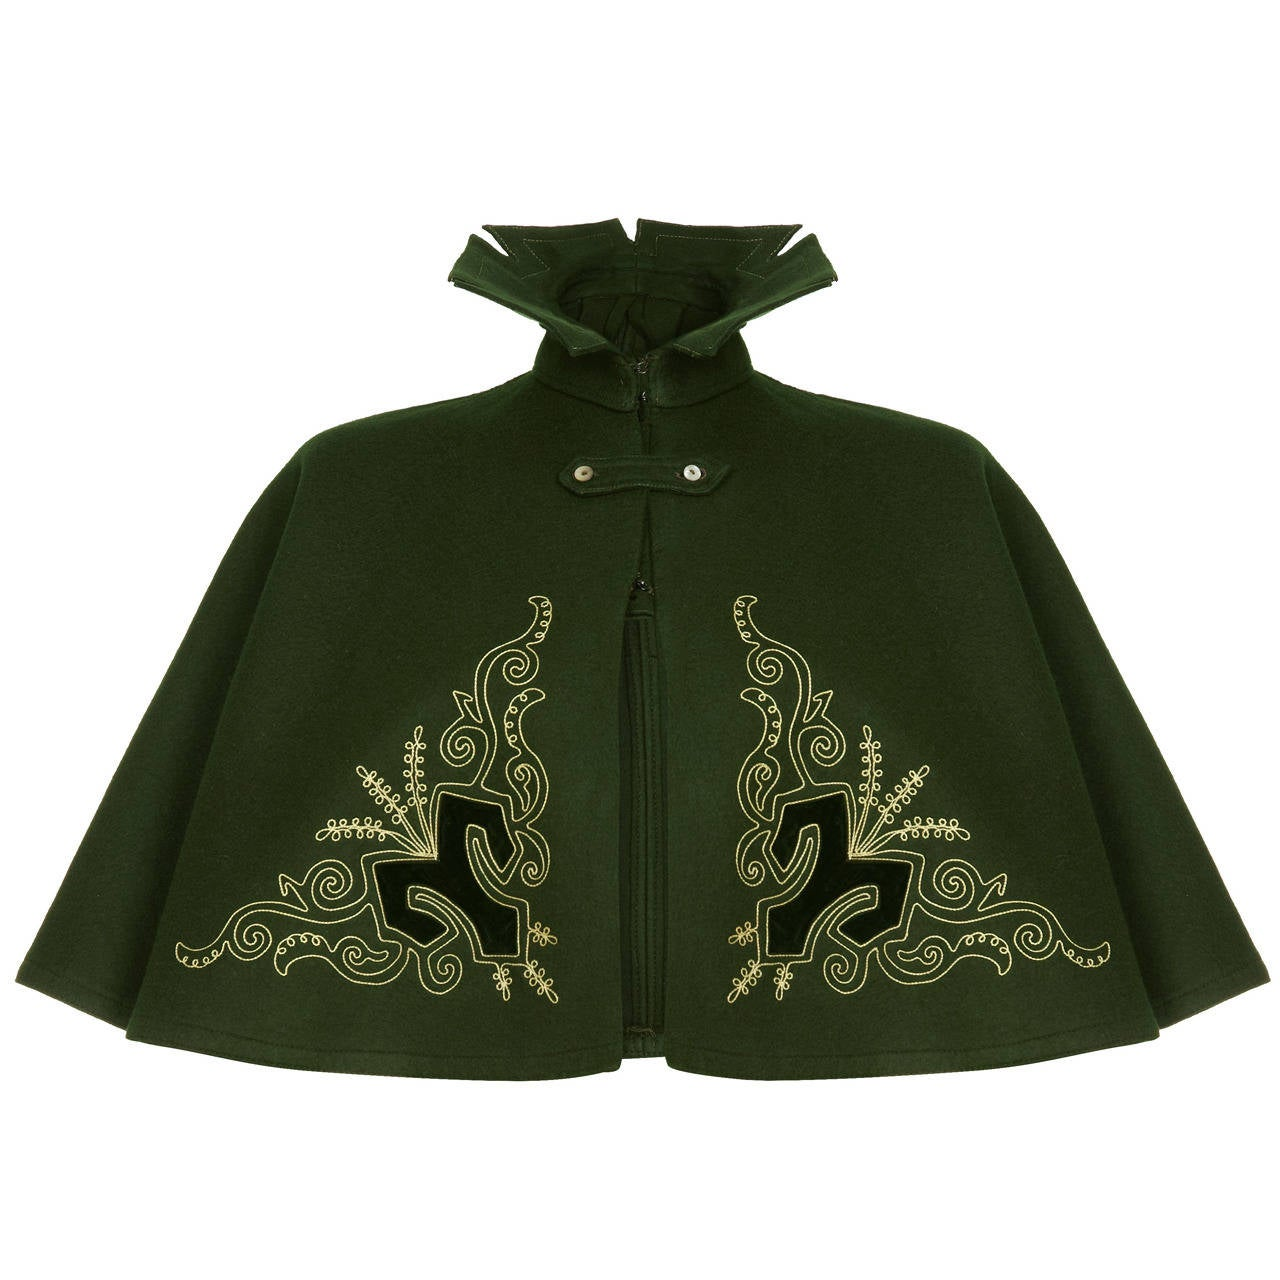 Victorian Green Felt Wool Cape 1